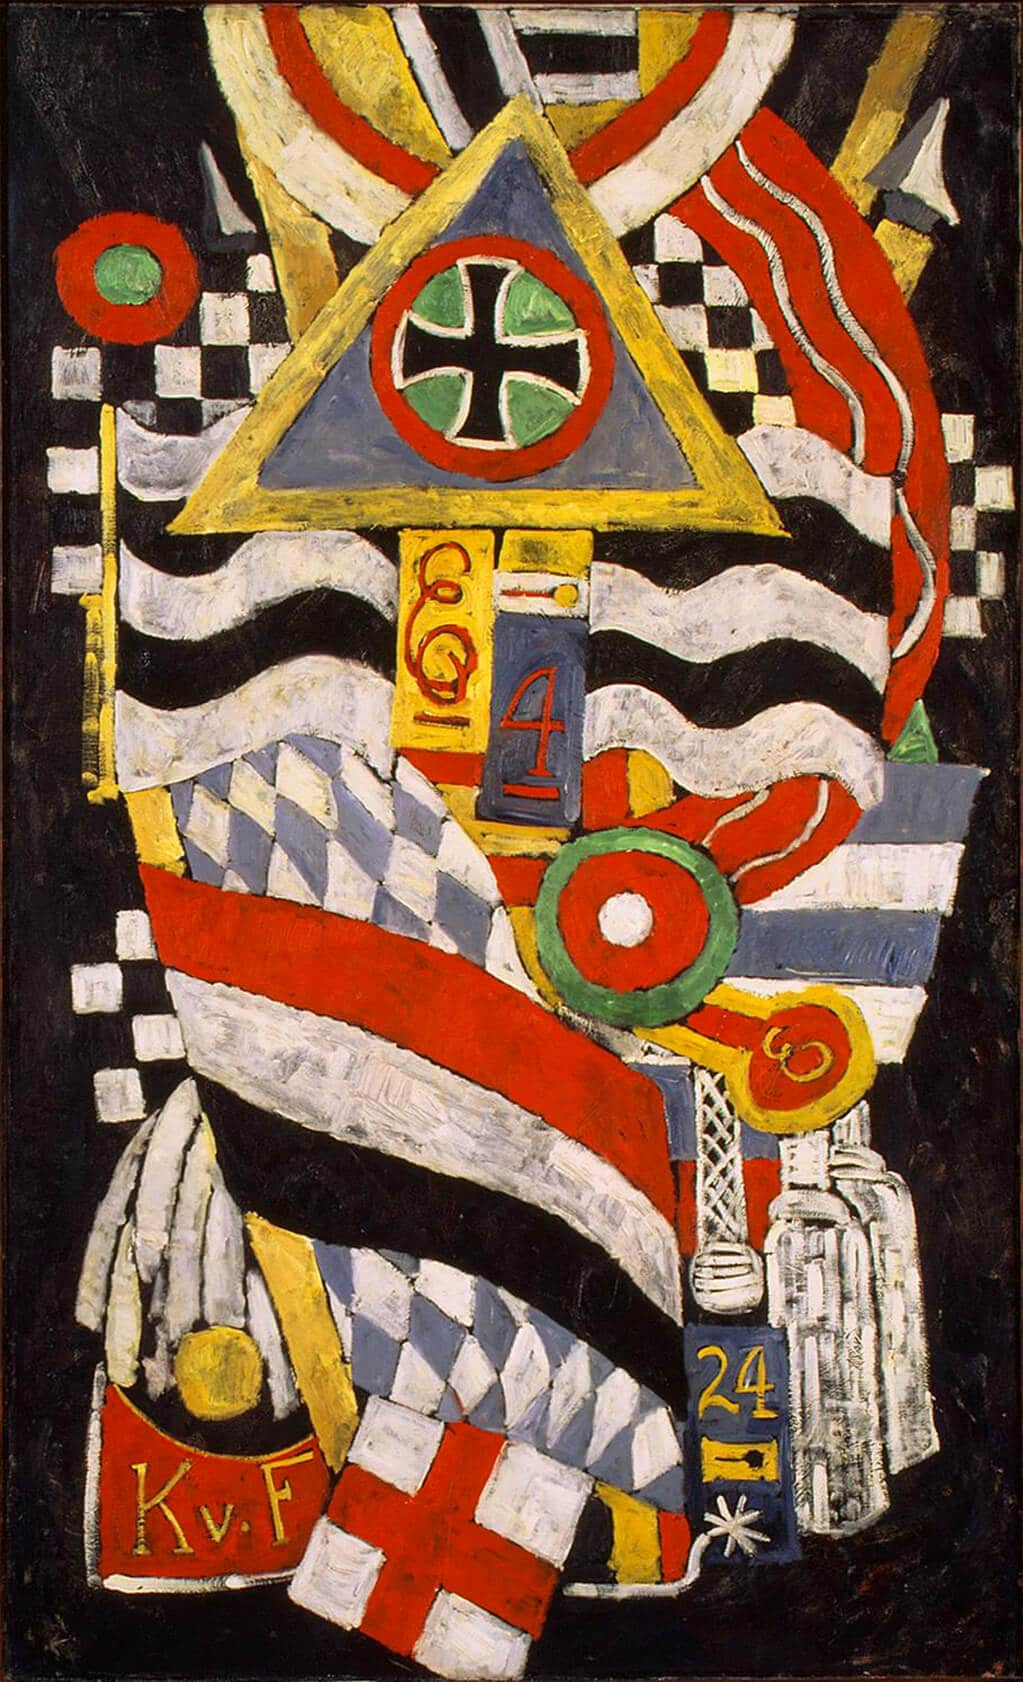 Marsden Hartley: Portrait of a German Officer (1914); Metropolitan Museum of Art, New York